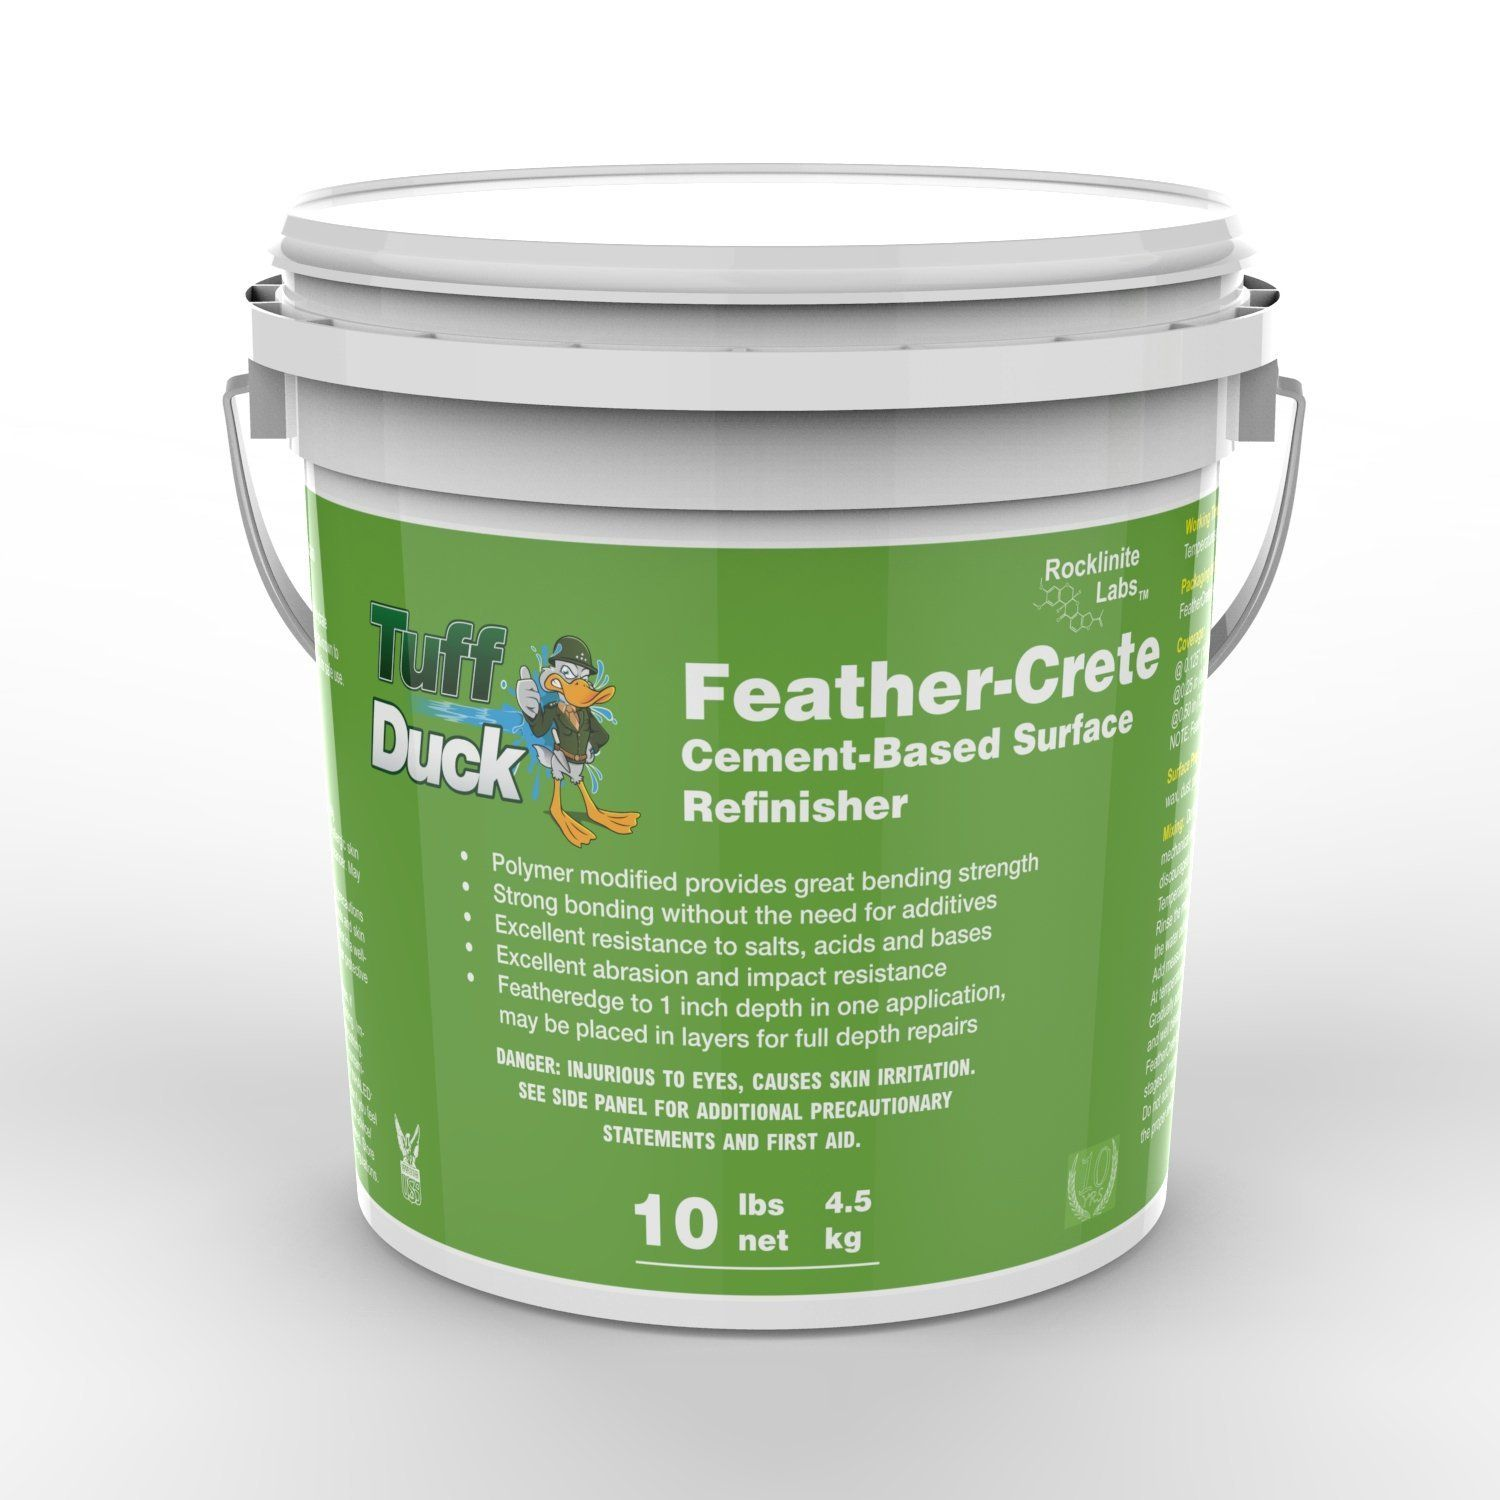 Tuff Duck Feathercrete Counter Top Overlay And Concrete Patch 10lb